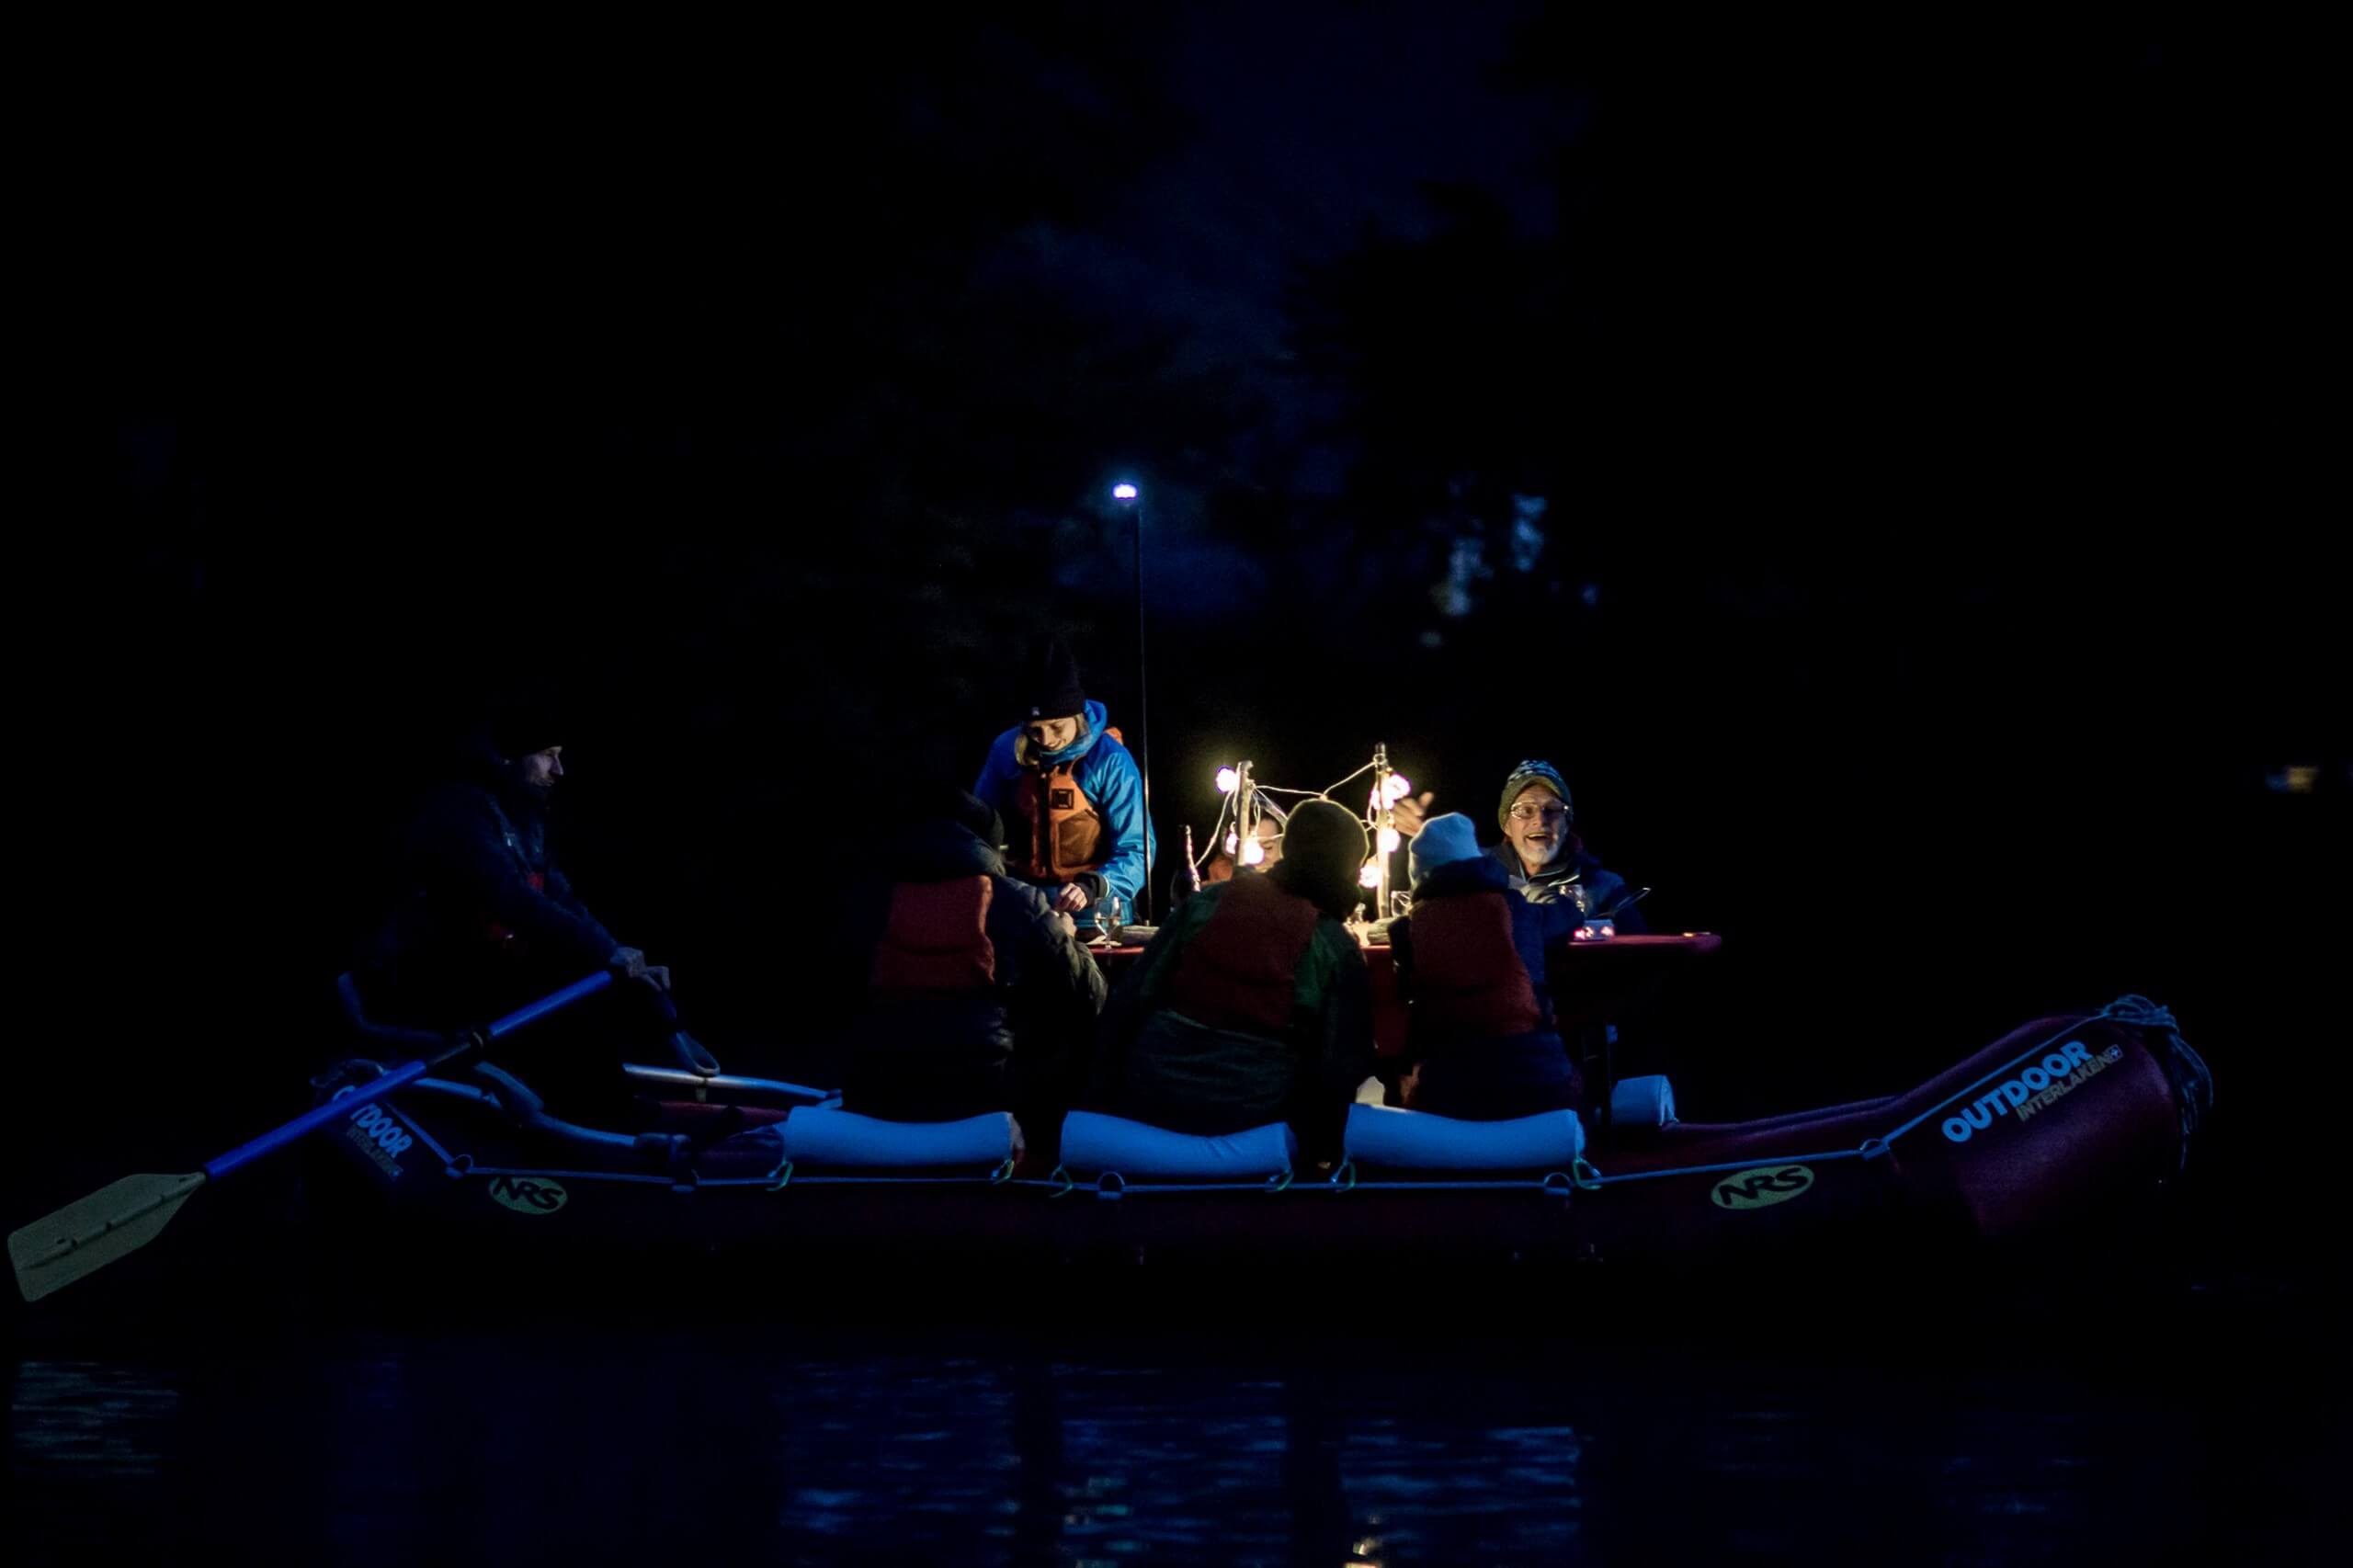 raclette-rafting-outdoor-interlaken-chillipictures-boot-nacht.jpg